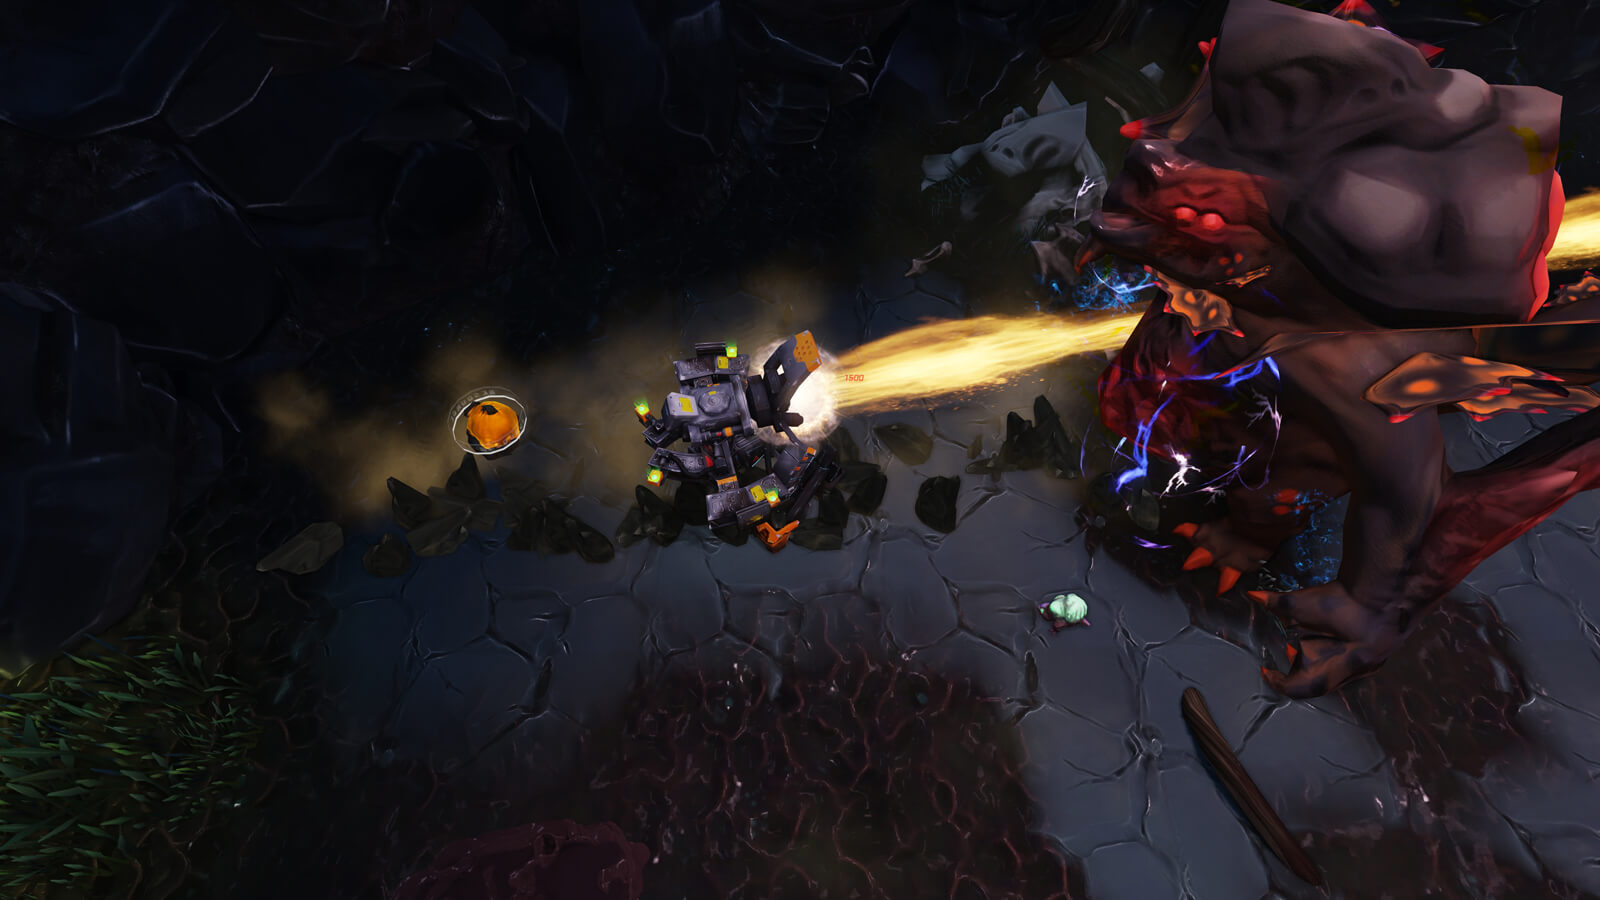 A battle mech shoots a thick orange beam at a massive enemy monster